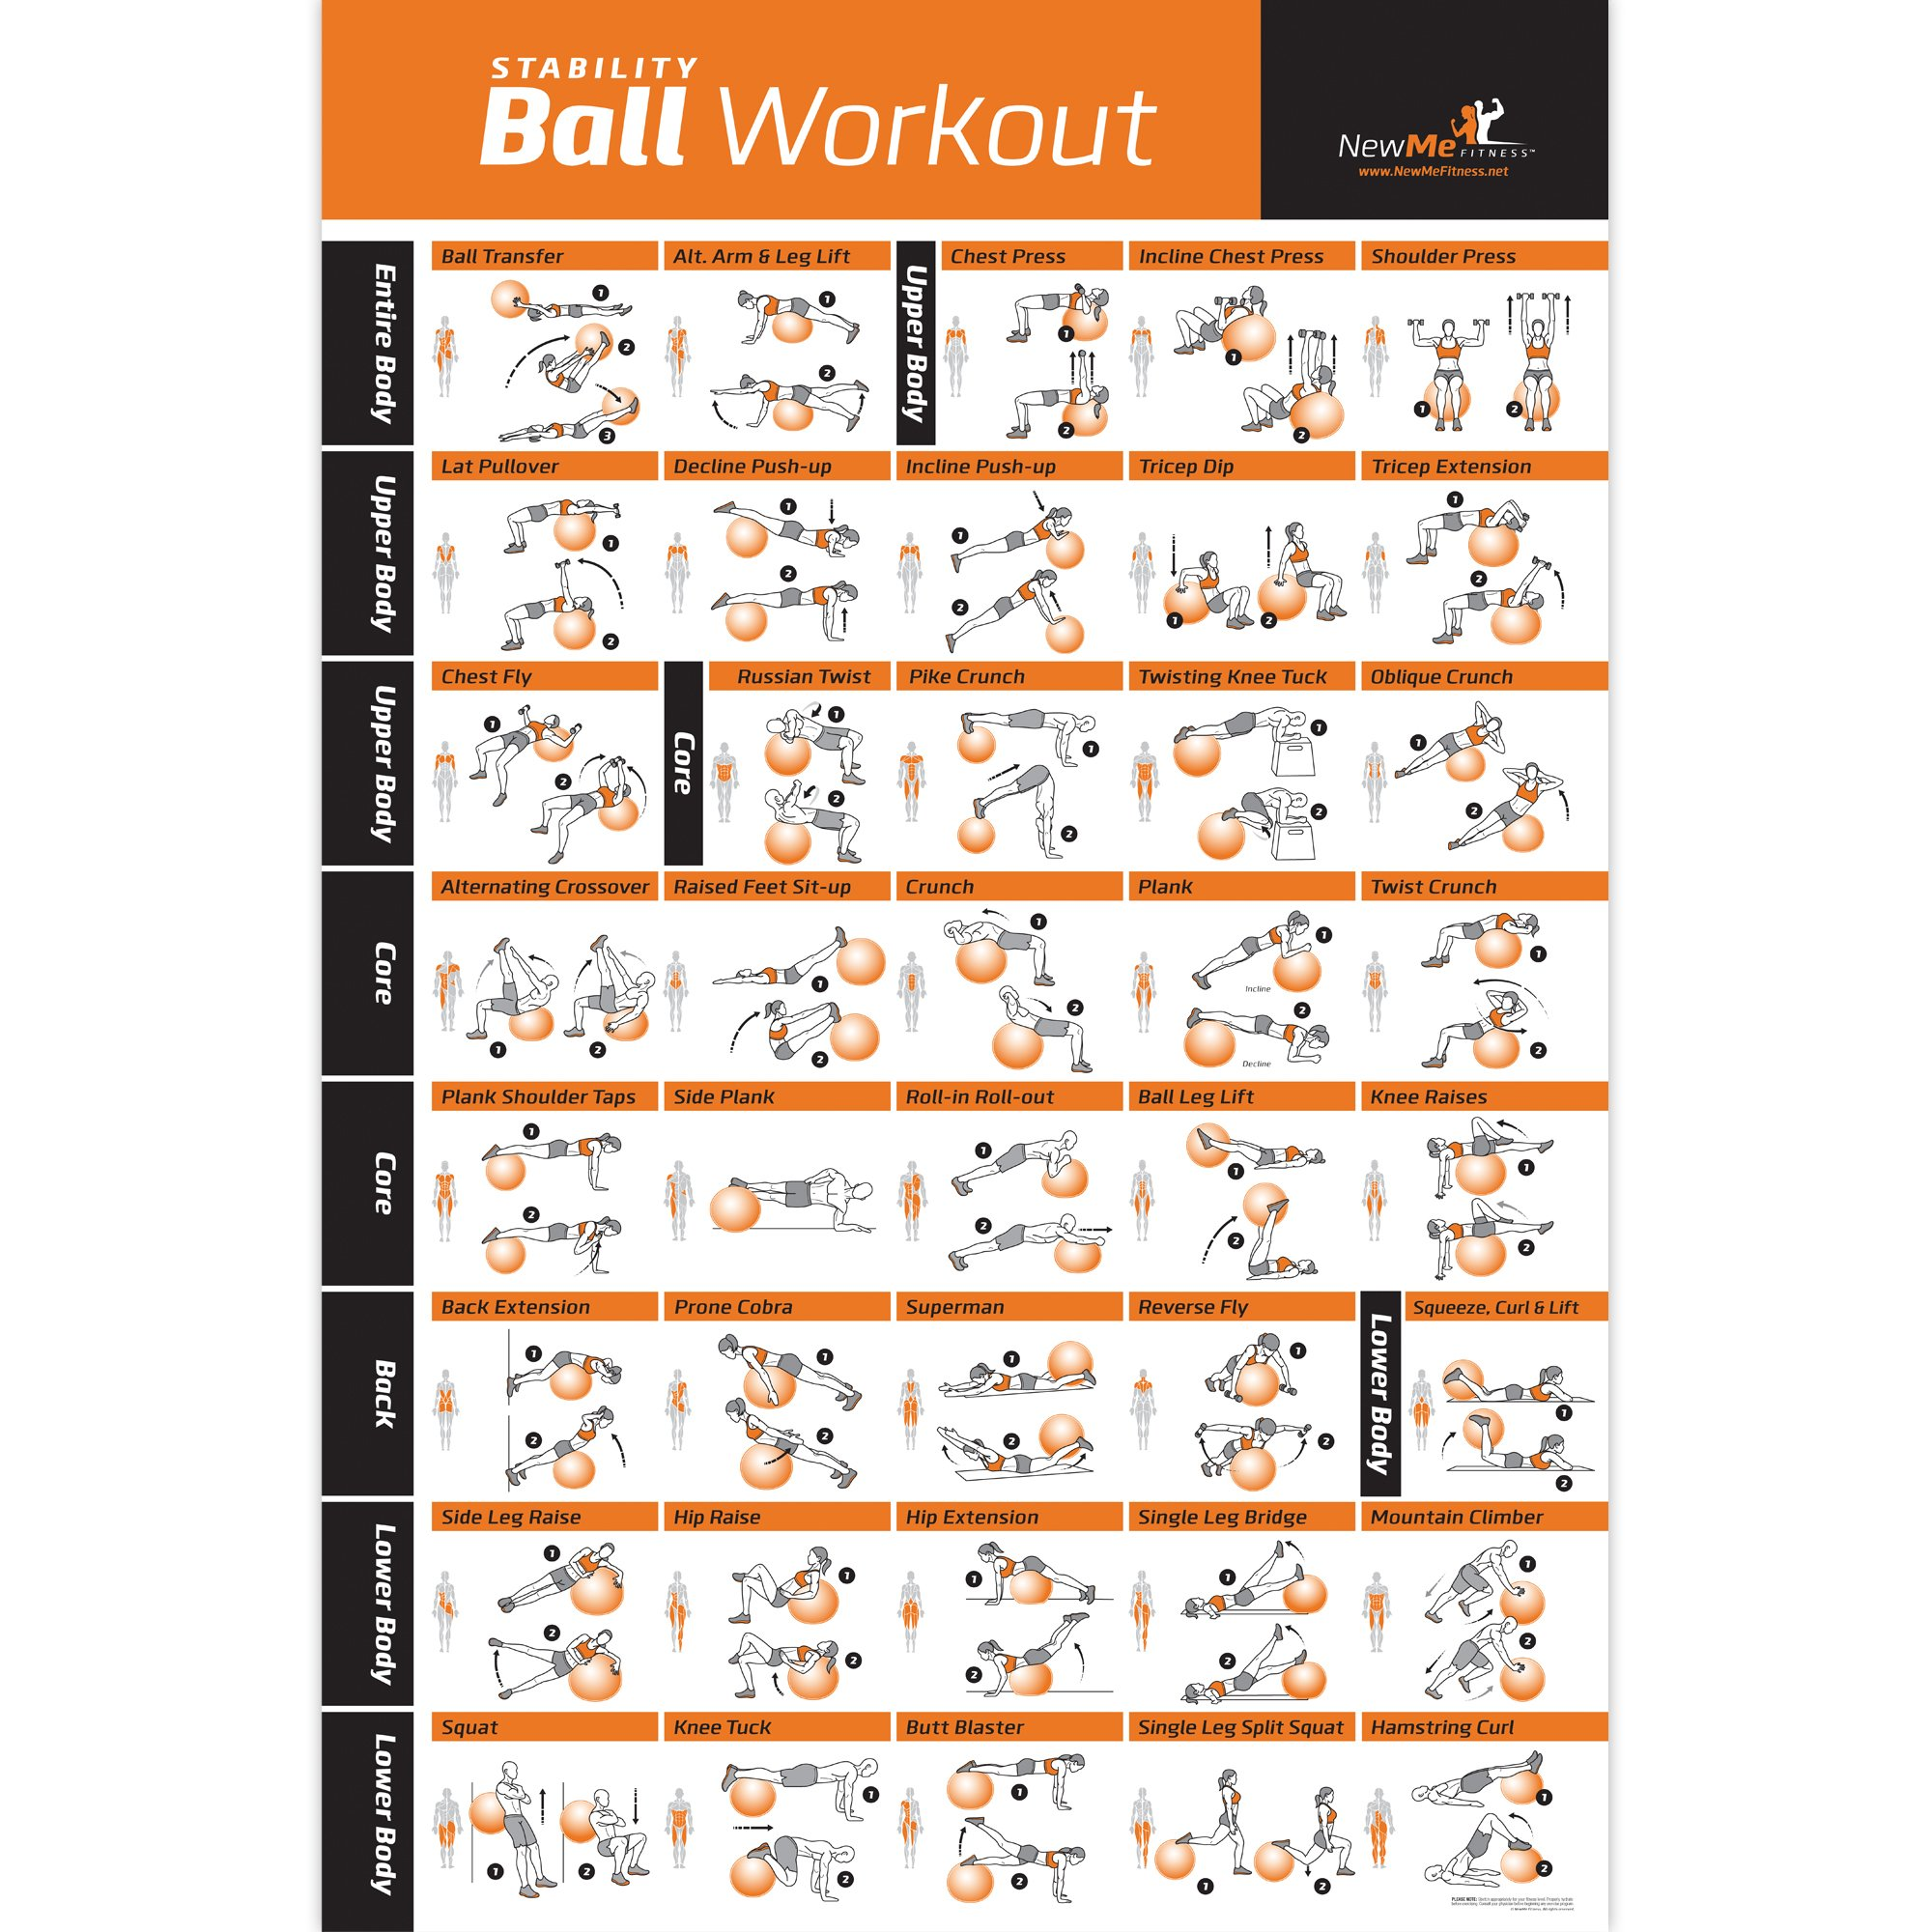 Exercise Ball Poster Laminated - Total Body Workout - Personal Trainer Fitness Program - Swiss, Yoga, Balance & Stability Ball Home Gym Poster - Tone Your Core, Abs, Legs Gluts & Upper Body - 20''x30''